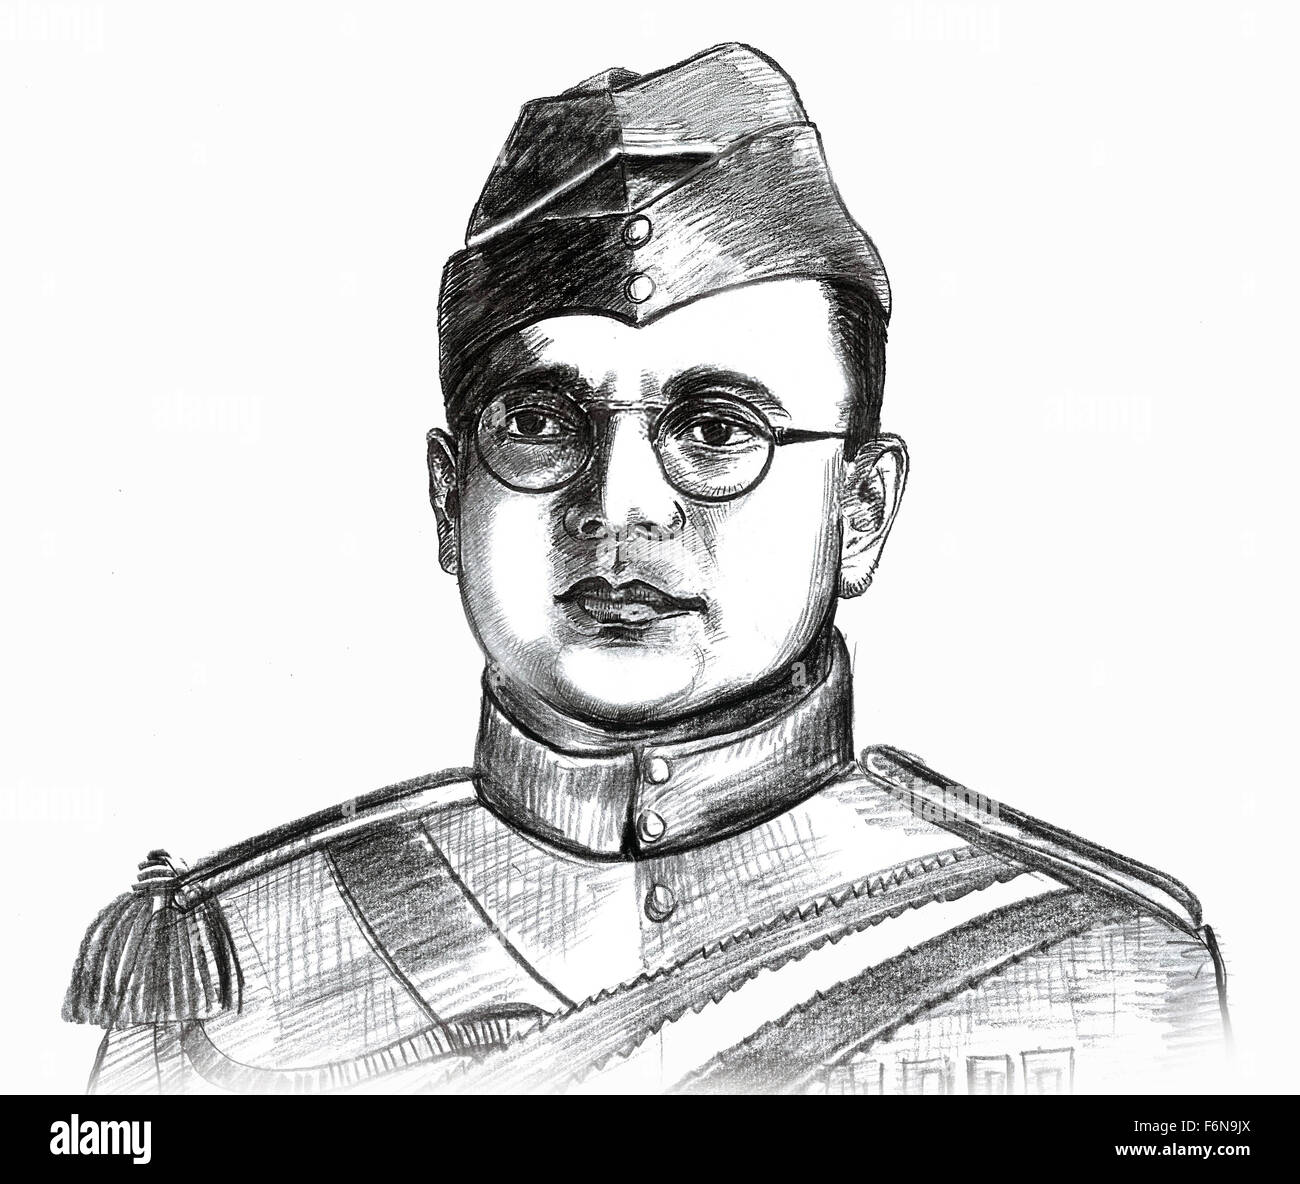 subhash chandra bose Subhash chandra bose is one of the most dynamic leaders of india's struggle of independence he is popularly known as netaji he was born in cuttack, orissa on.